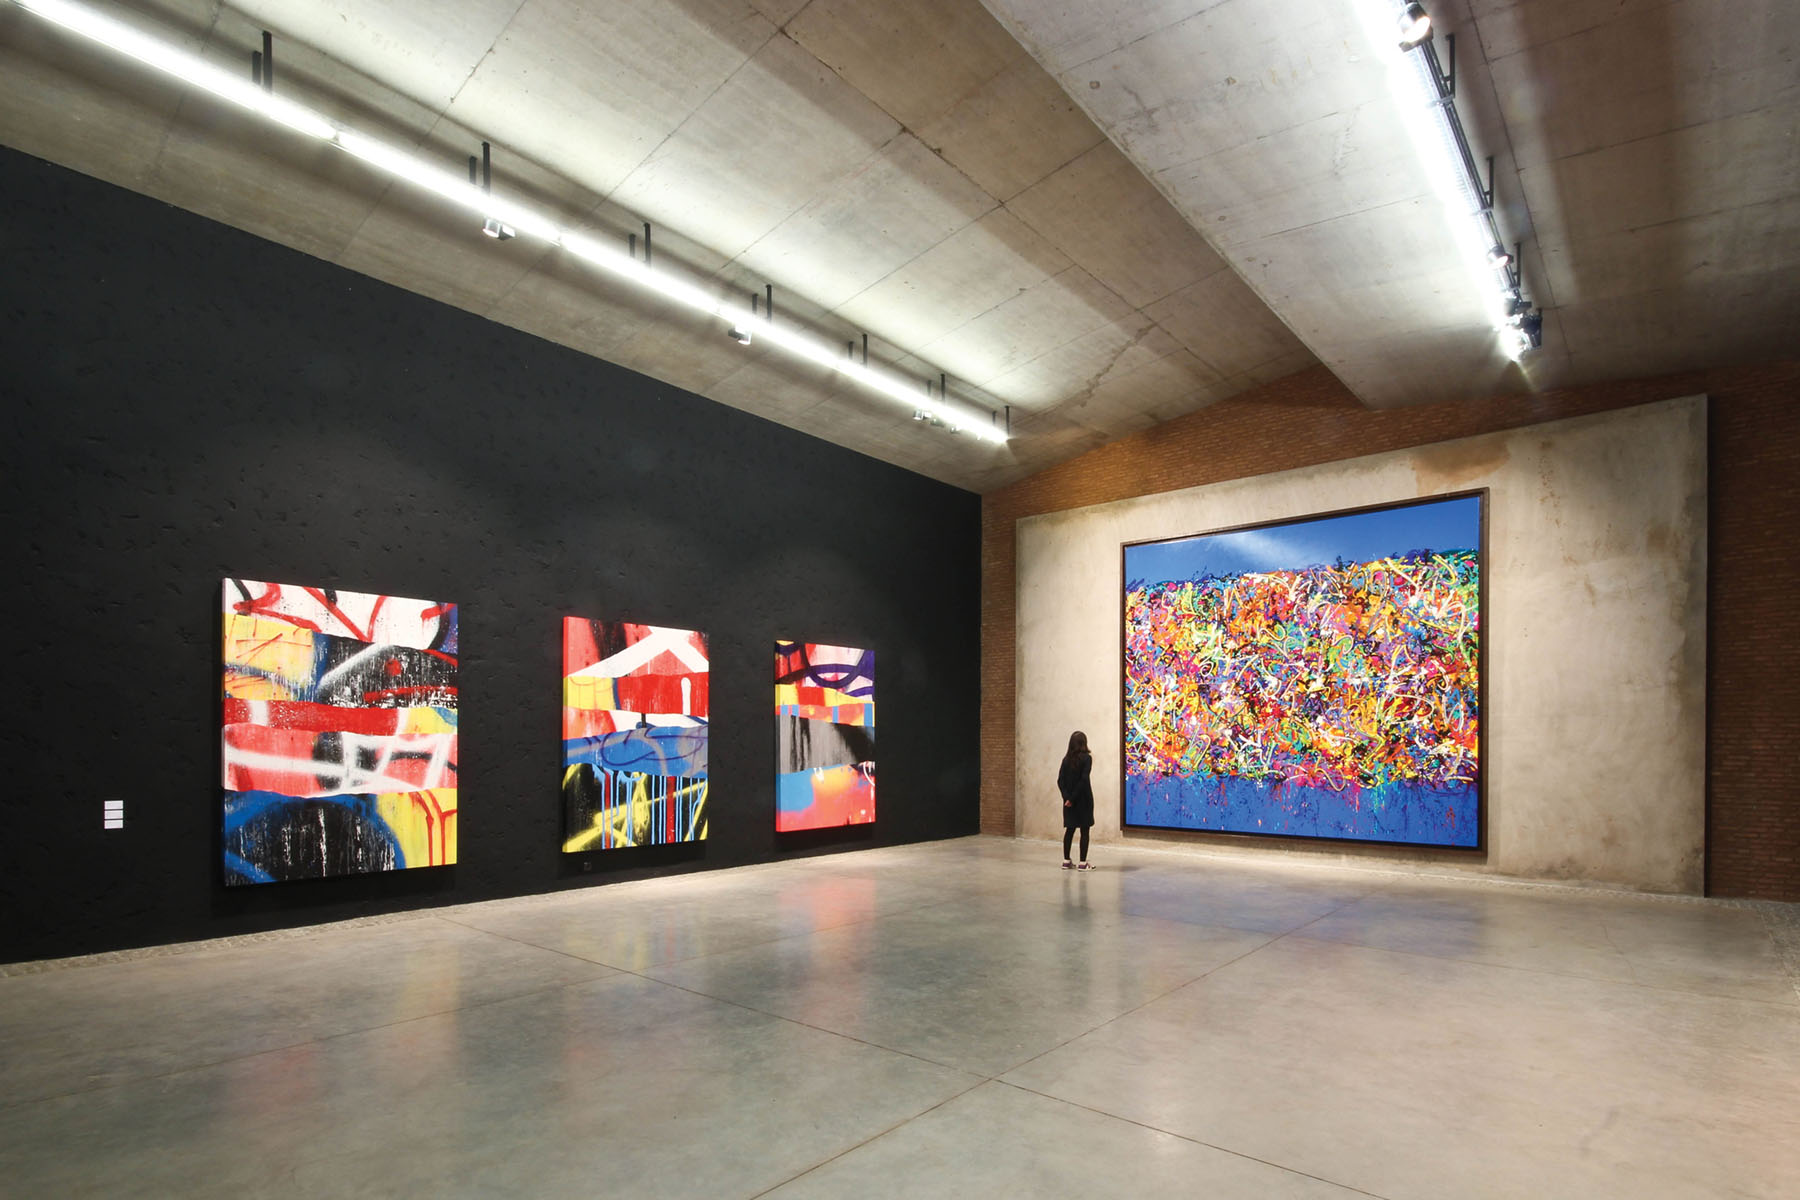 Montresso foundation contemporary art space highlights street artists like FeX, JonOne and Cedrix Crespel